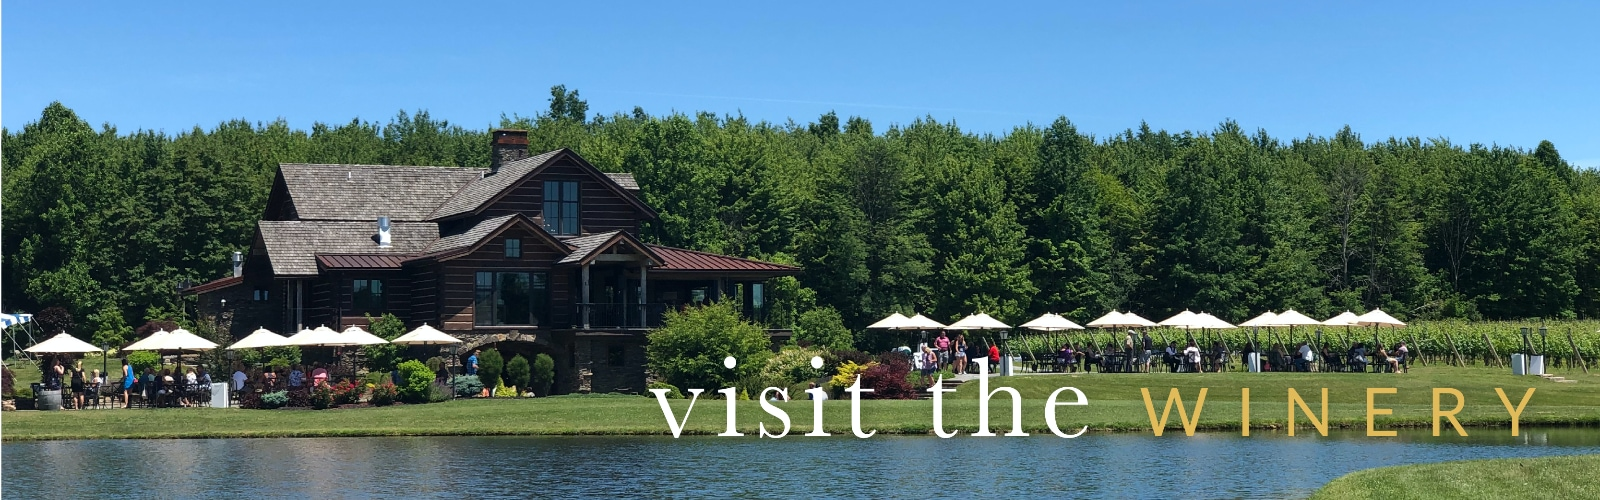 Visit The Winery